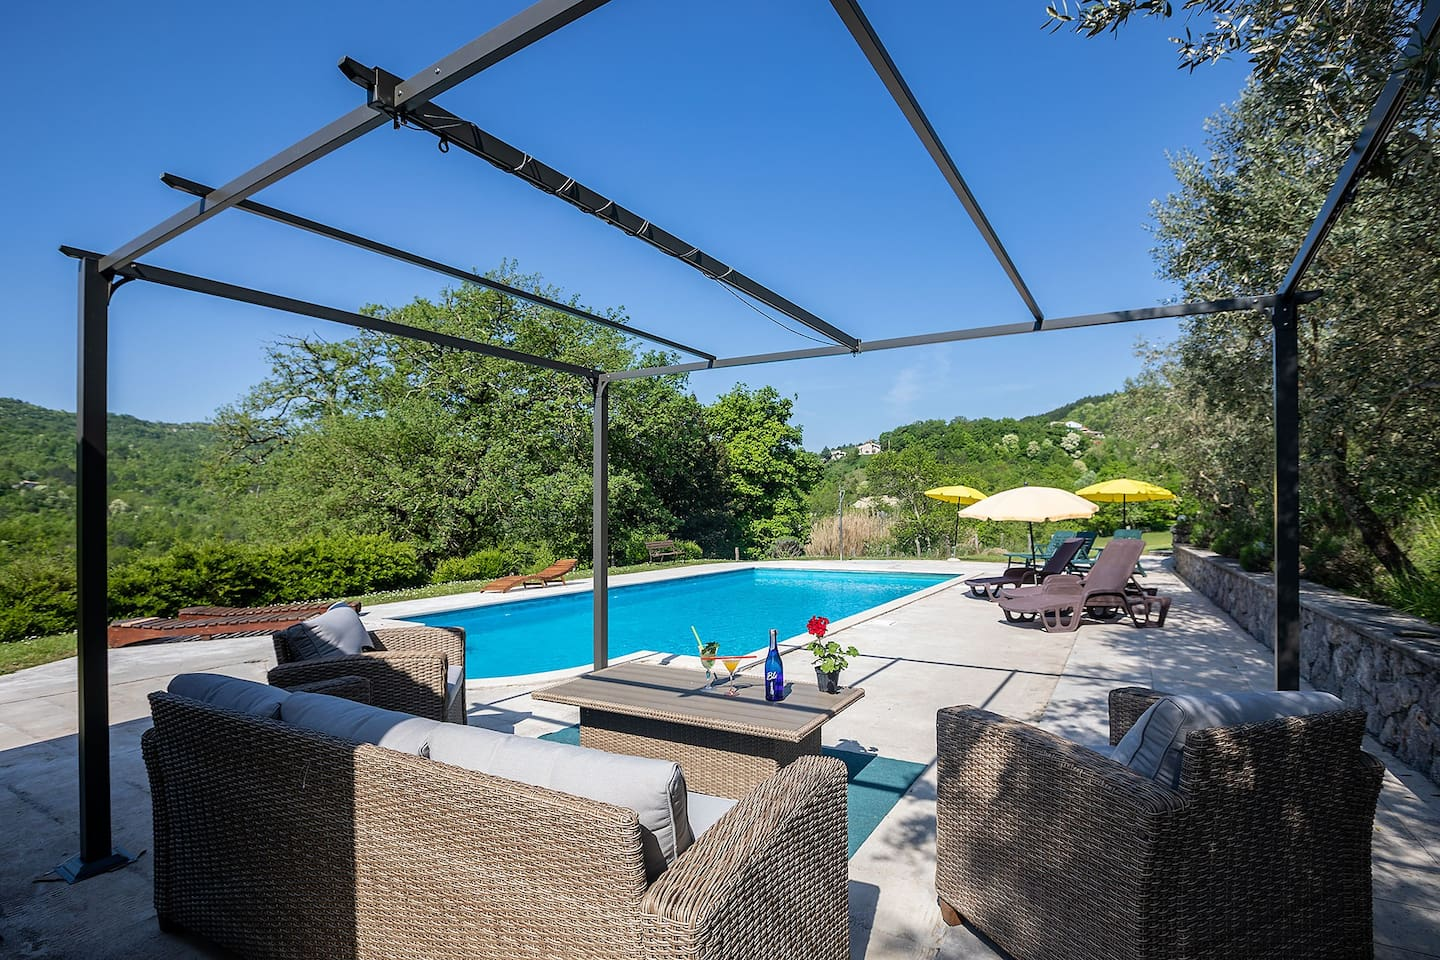 Pool & Lounge.. only few steps from your suite, surounded with olive & oat trees. Pool is 5 x 10 meters large, ideal for swimming